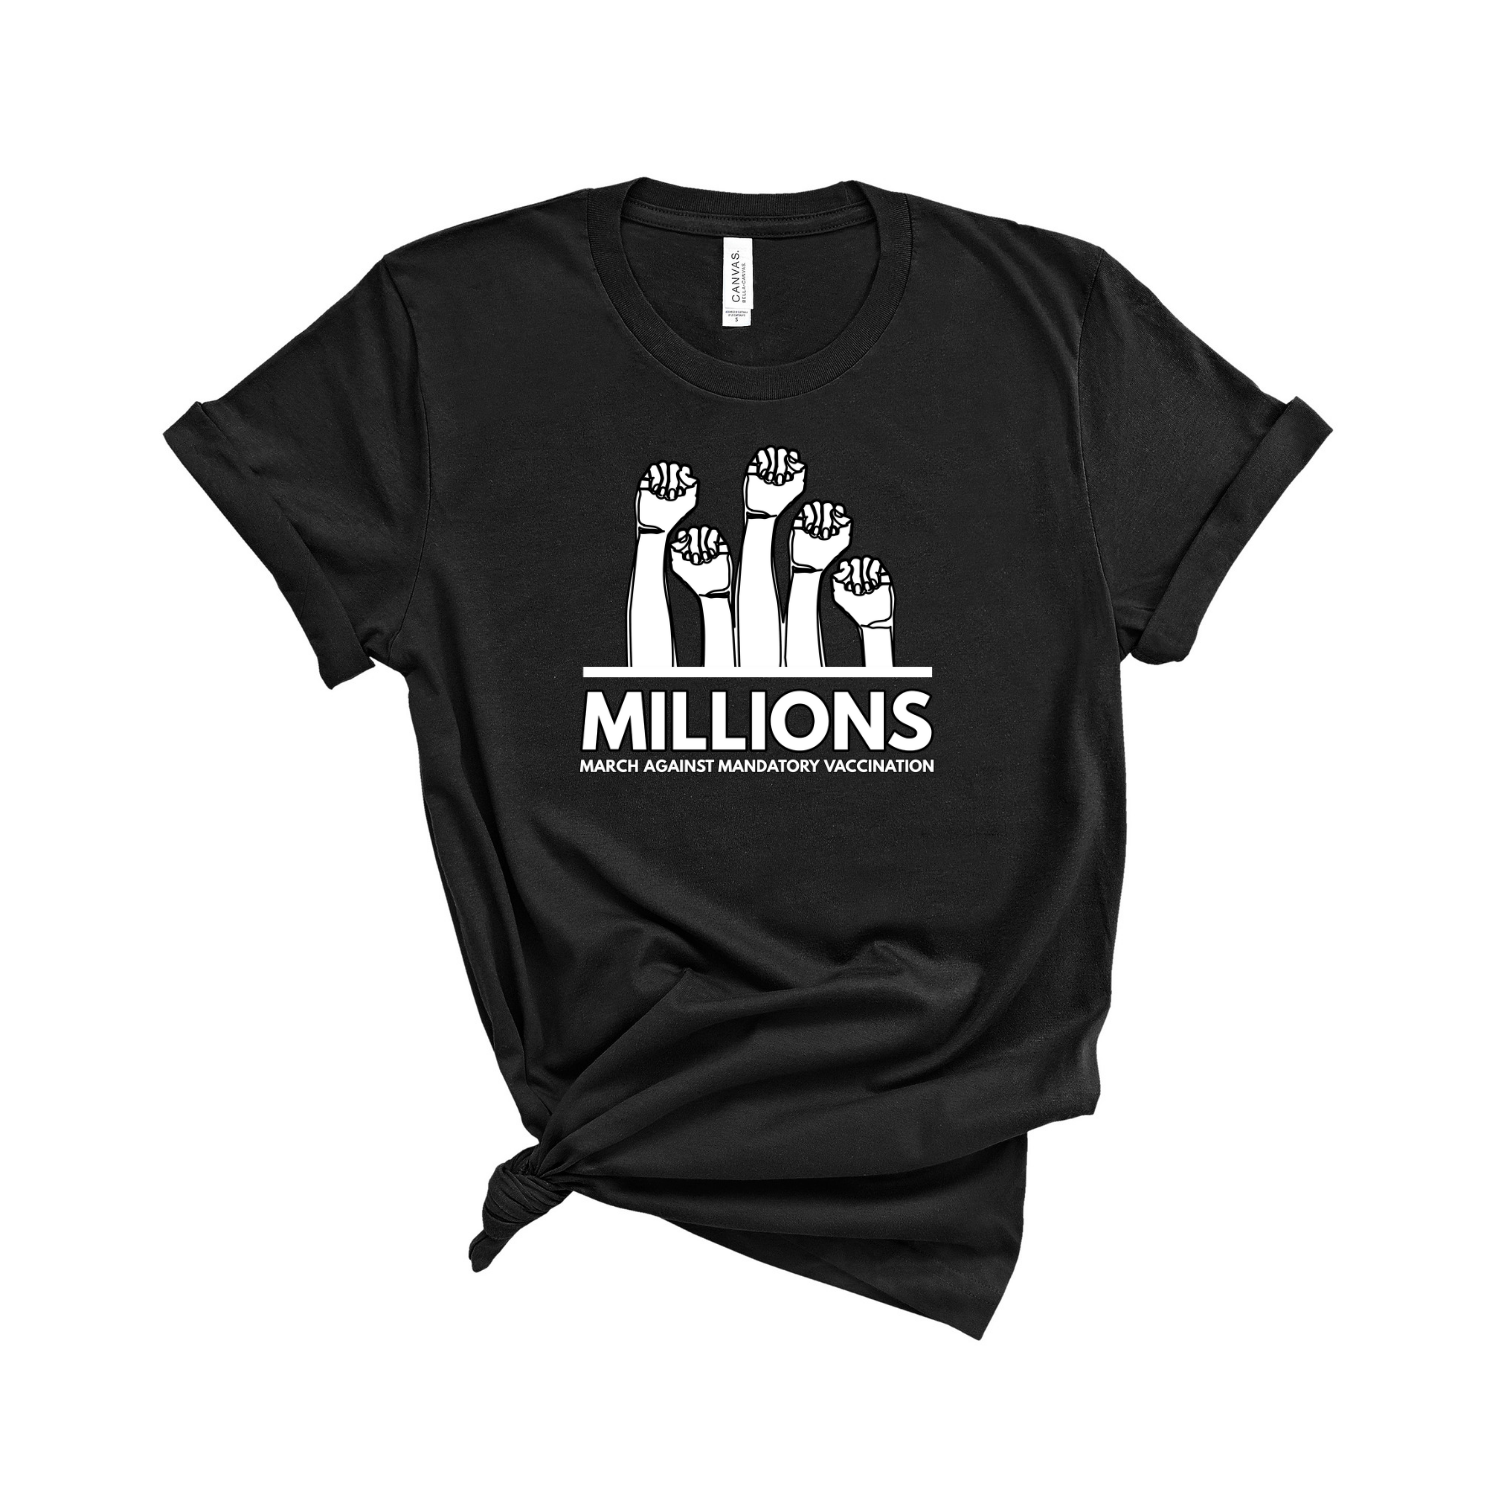 T-SHIRT + MILLIONS MARCH IV